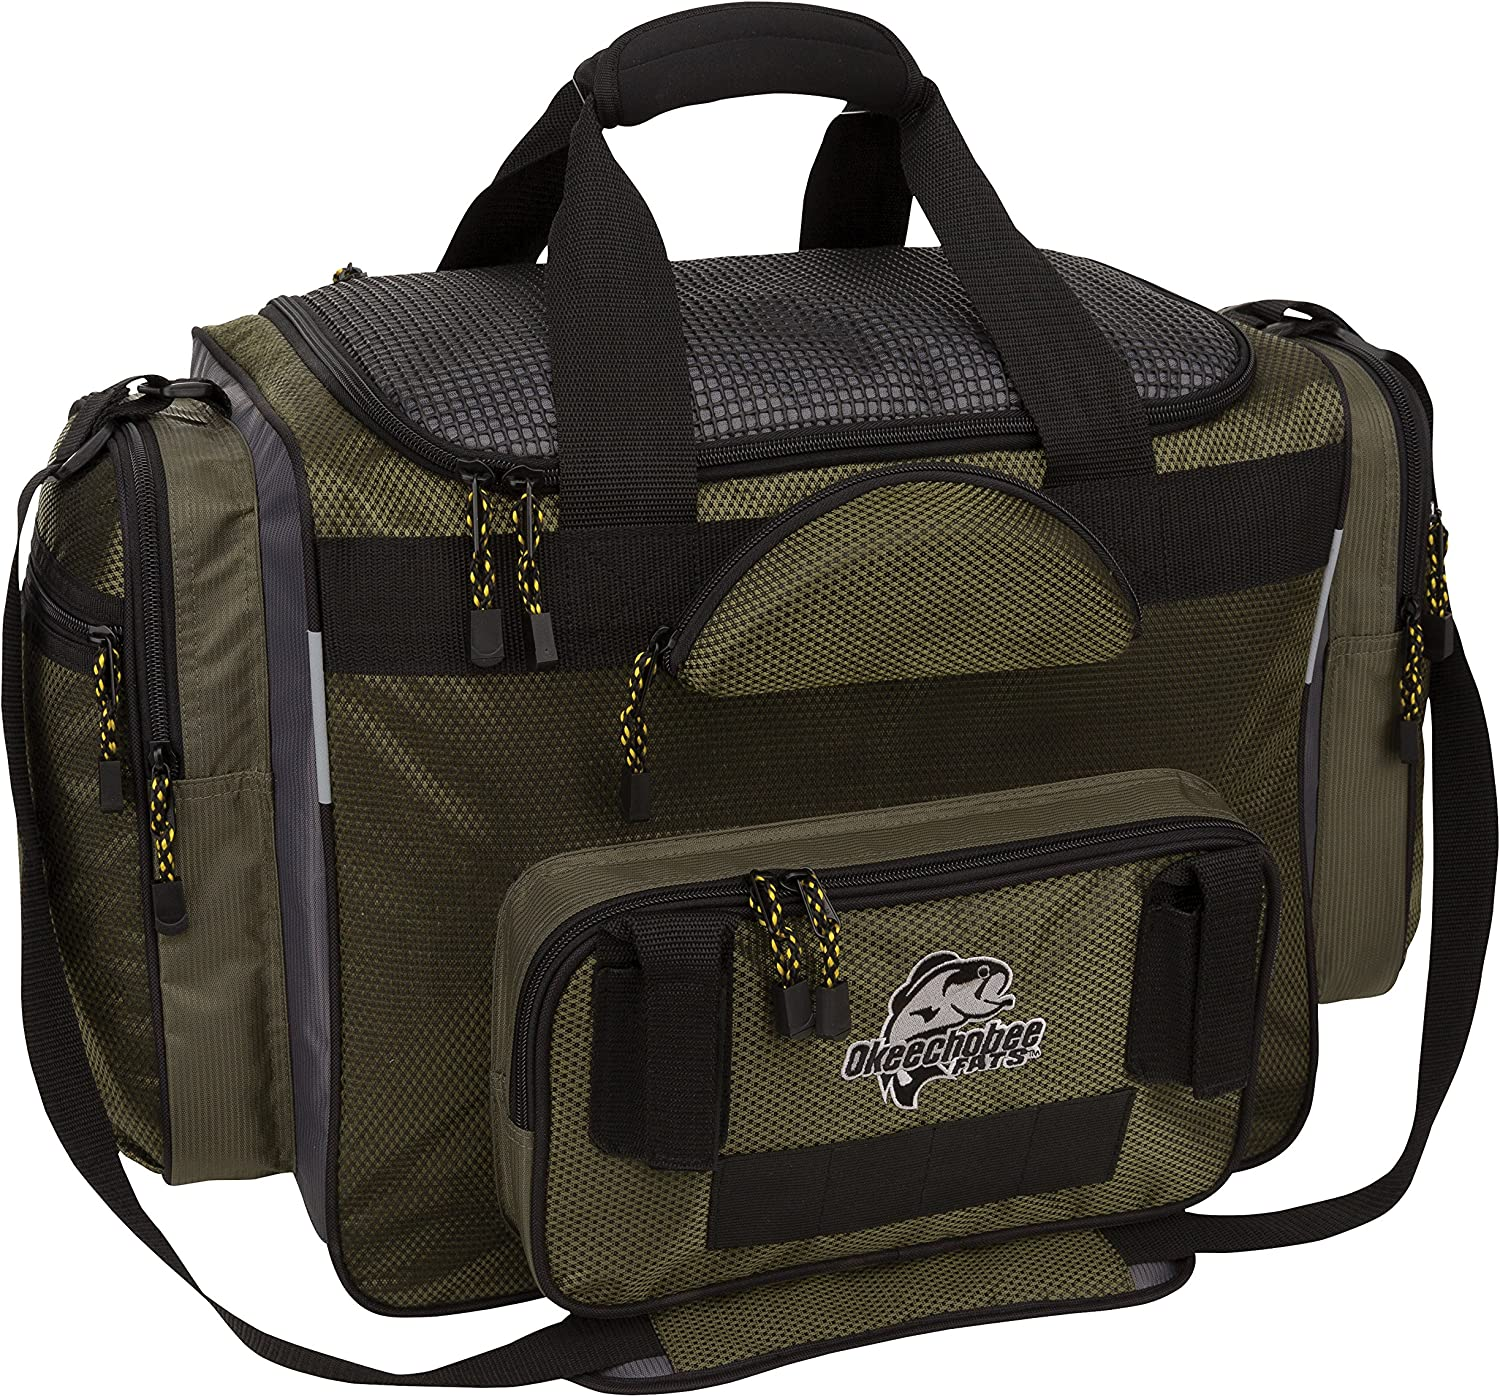 Okeechobee Fats Deluxe Tackle Bag